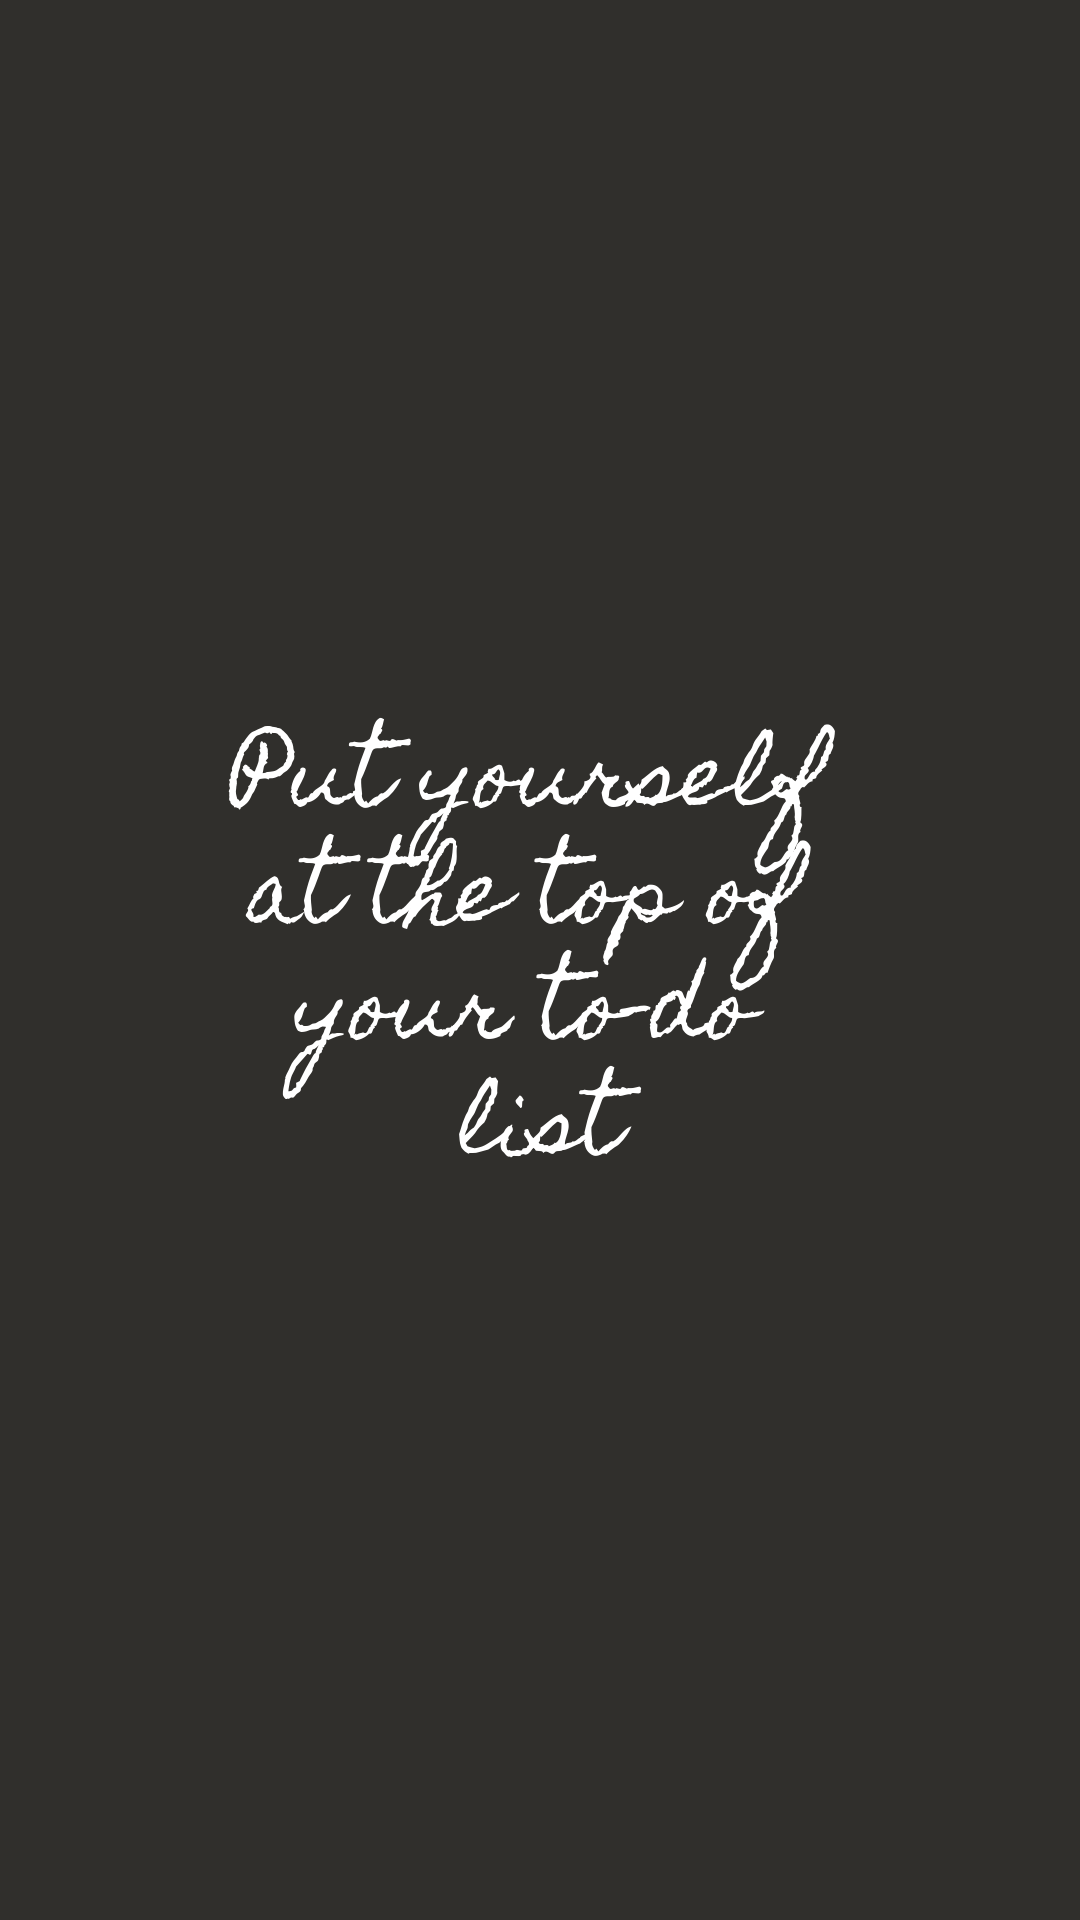 Put Yourself at the Top of Your To-Do List | Motivational, Inspiring Quotes | Free Phone Background | Miranda Schroeder Blog